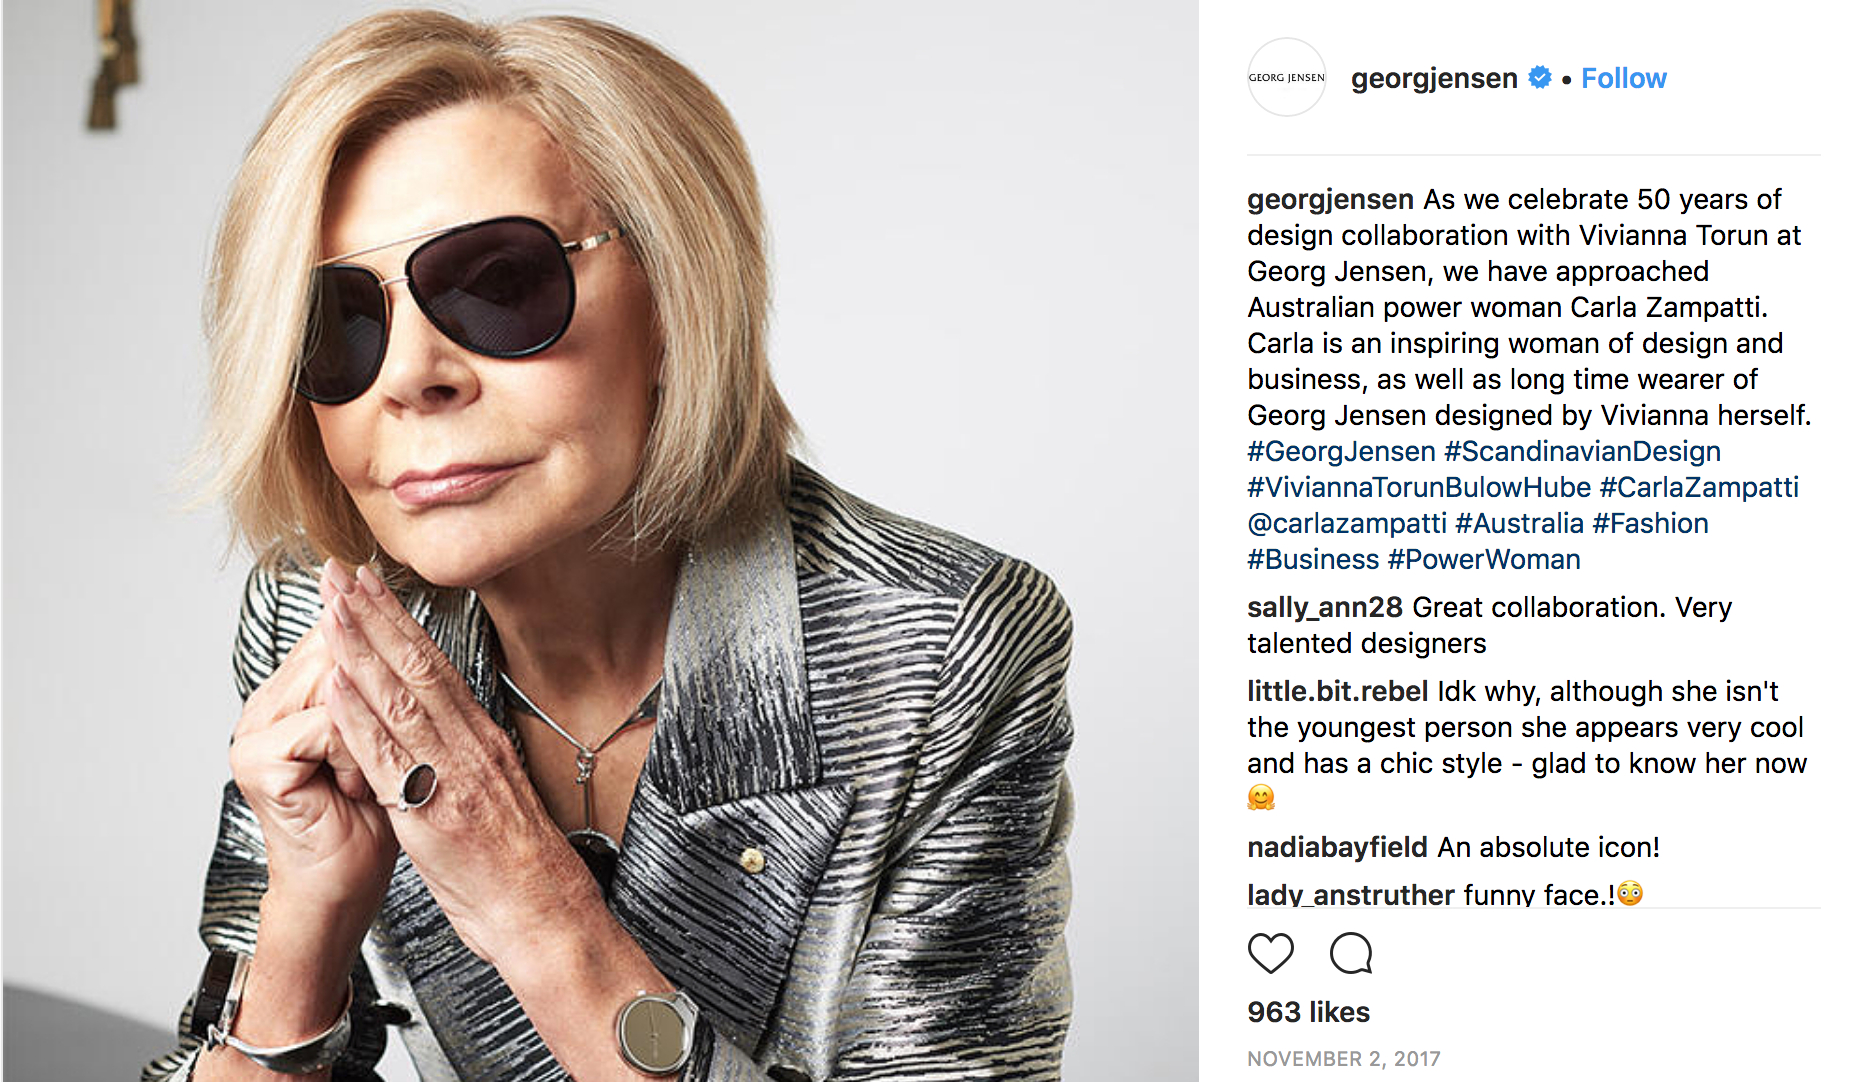 """GEORG_JENSEN_on_Instagram_""""As_we_celebrate_50_years_of_design_collaboration_with_Vivianna_Torun_at_Georg_Jensen,_we_have_approached_Australian_power_woman_Carla…""""_-_2018-04-06_15.12.08.jpg"""